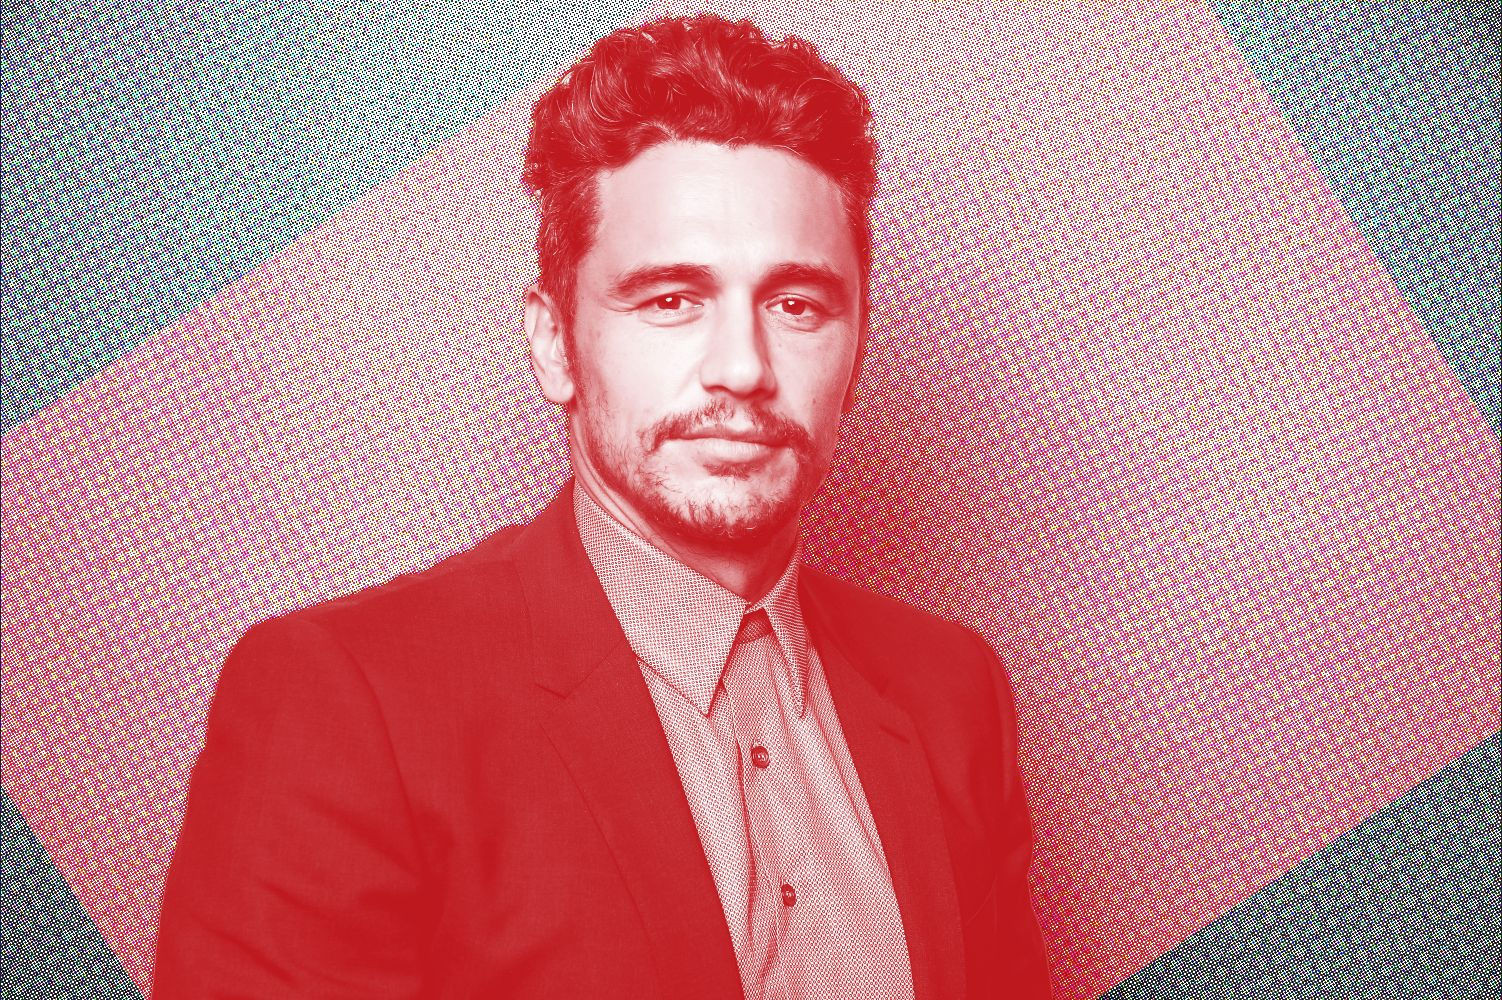 What To Do With James Franco, An Alleged Harasser Long Defined By Sex